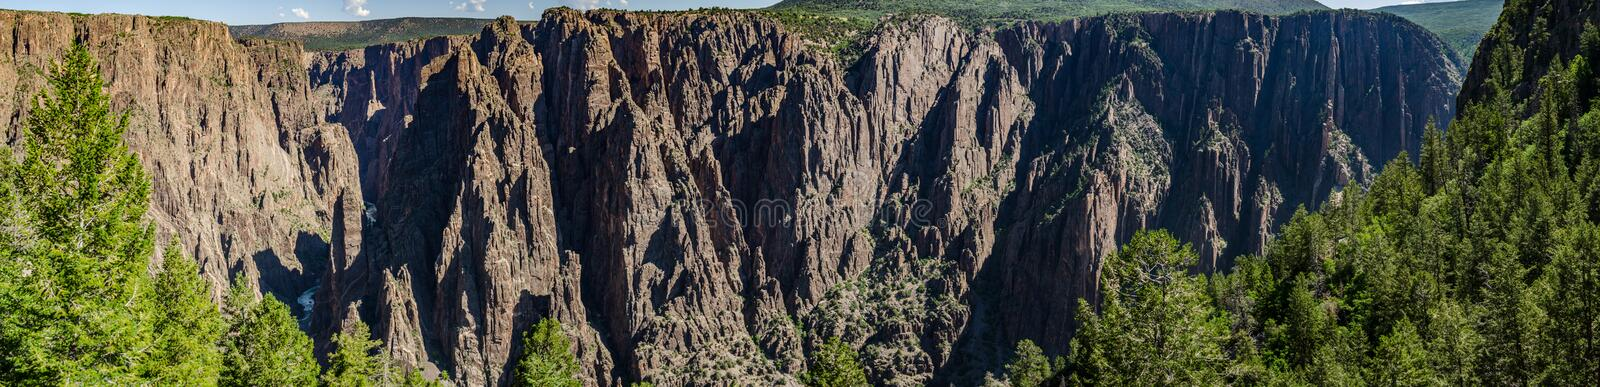 Black Canyon of the Gunnison Panorama royalty free stock images